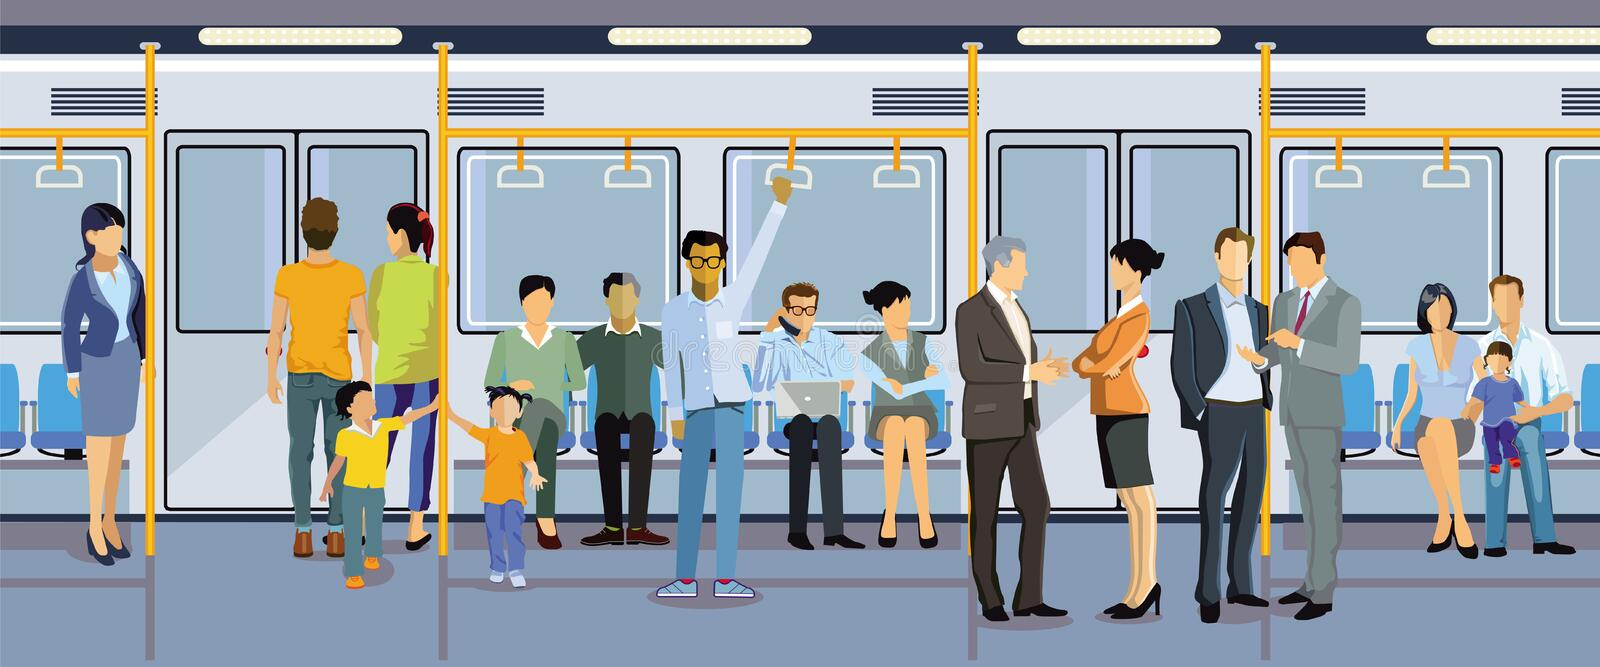 Passengers in subway royalty free stock image